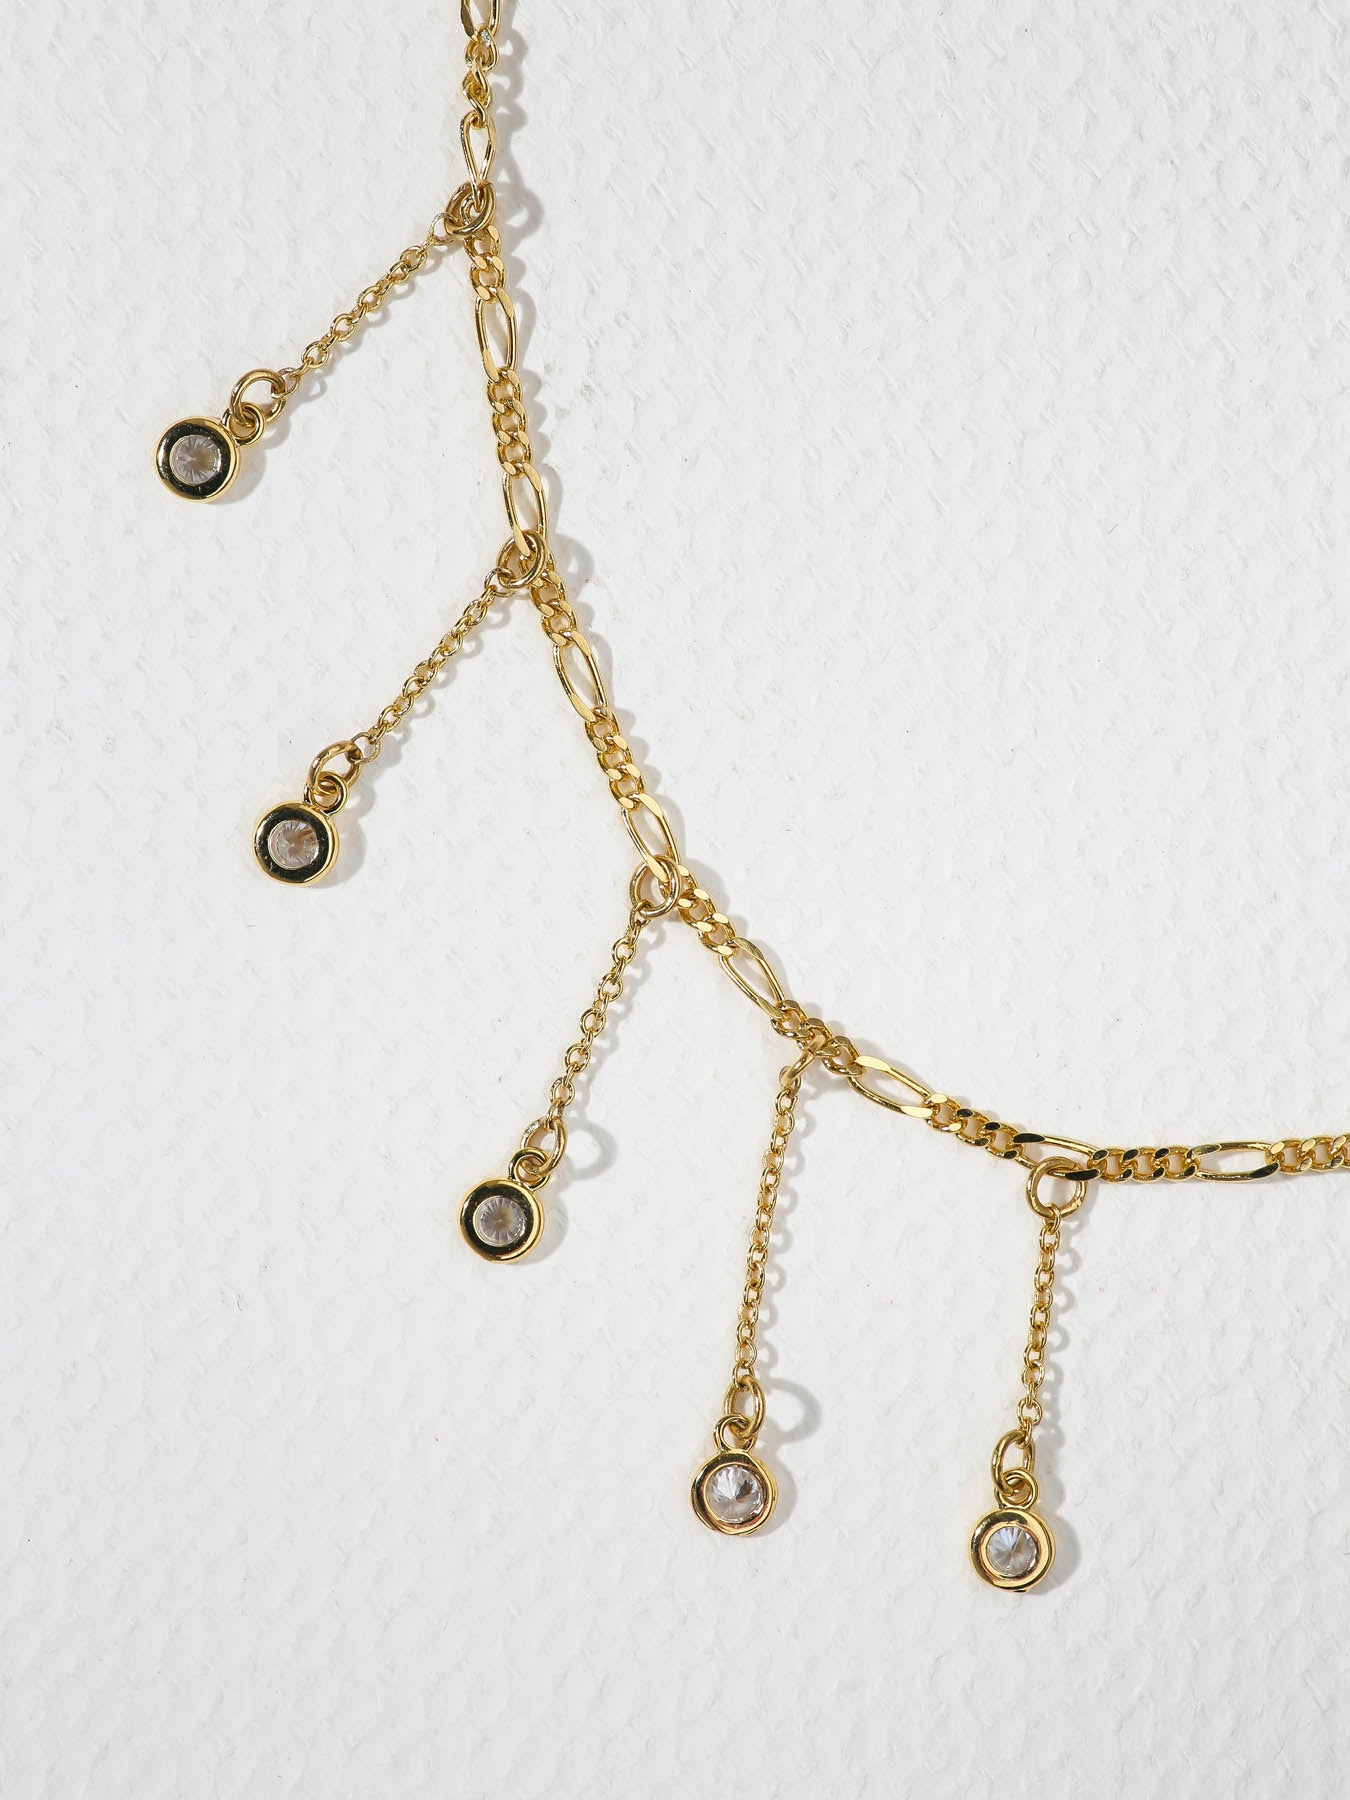 The Dew Drop Necklace